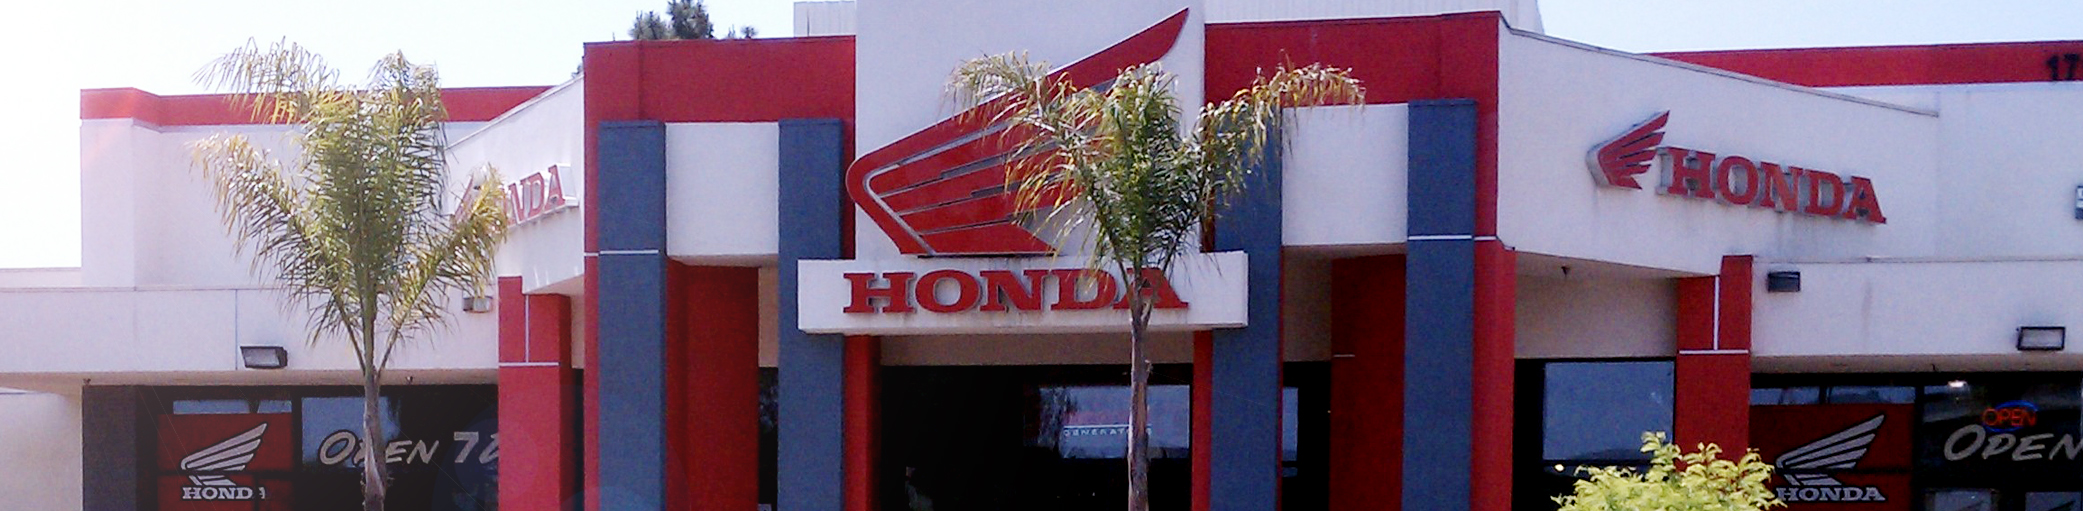 Visit our store today - HB Honda Motorcycles